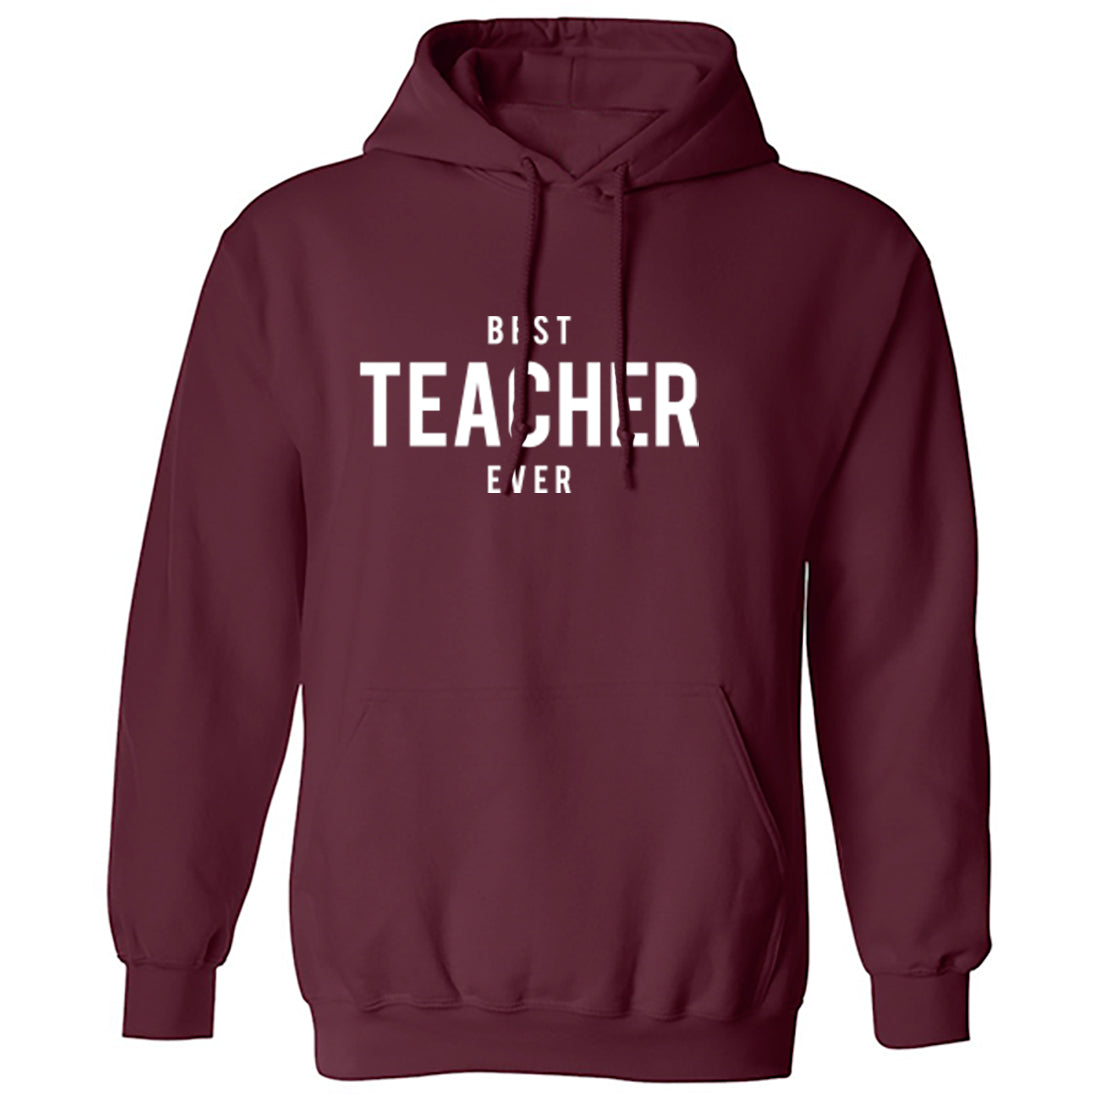 Best Teacher Ever Unisex Hoodie K1524 - Illustrated Identity Ltd.